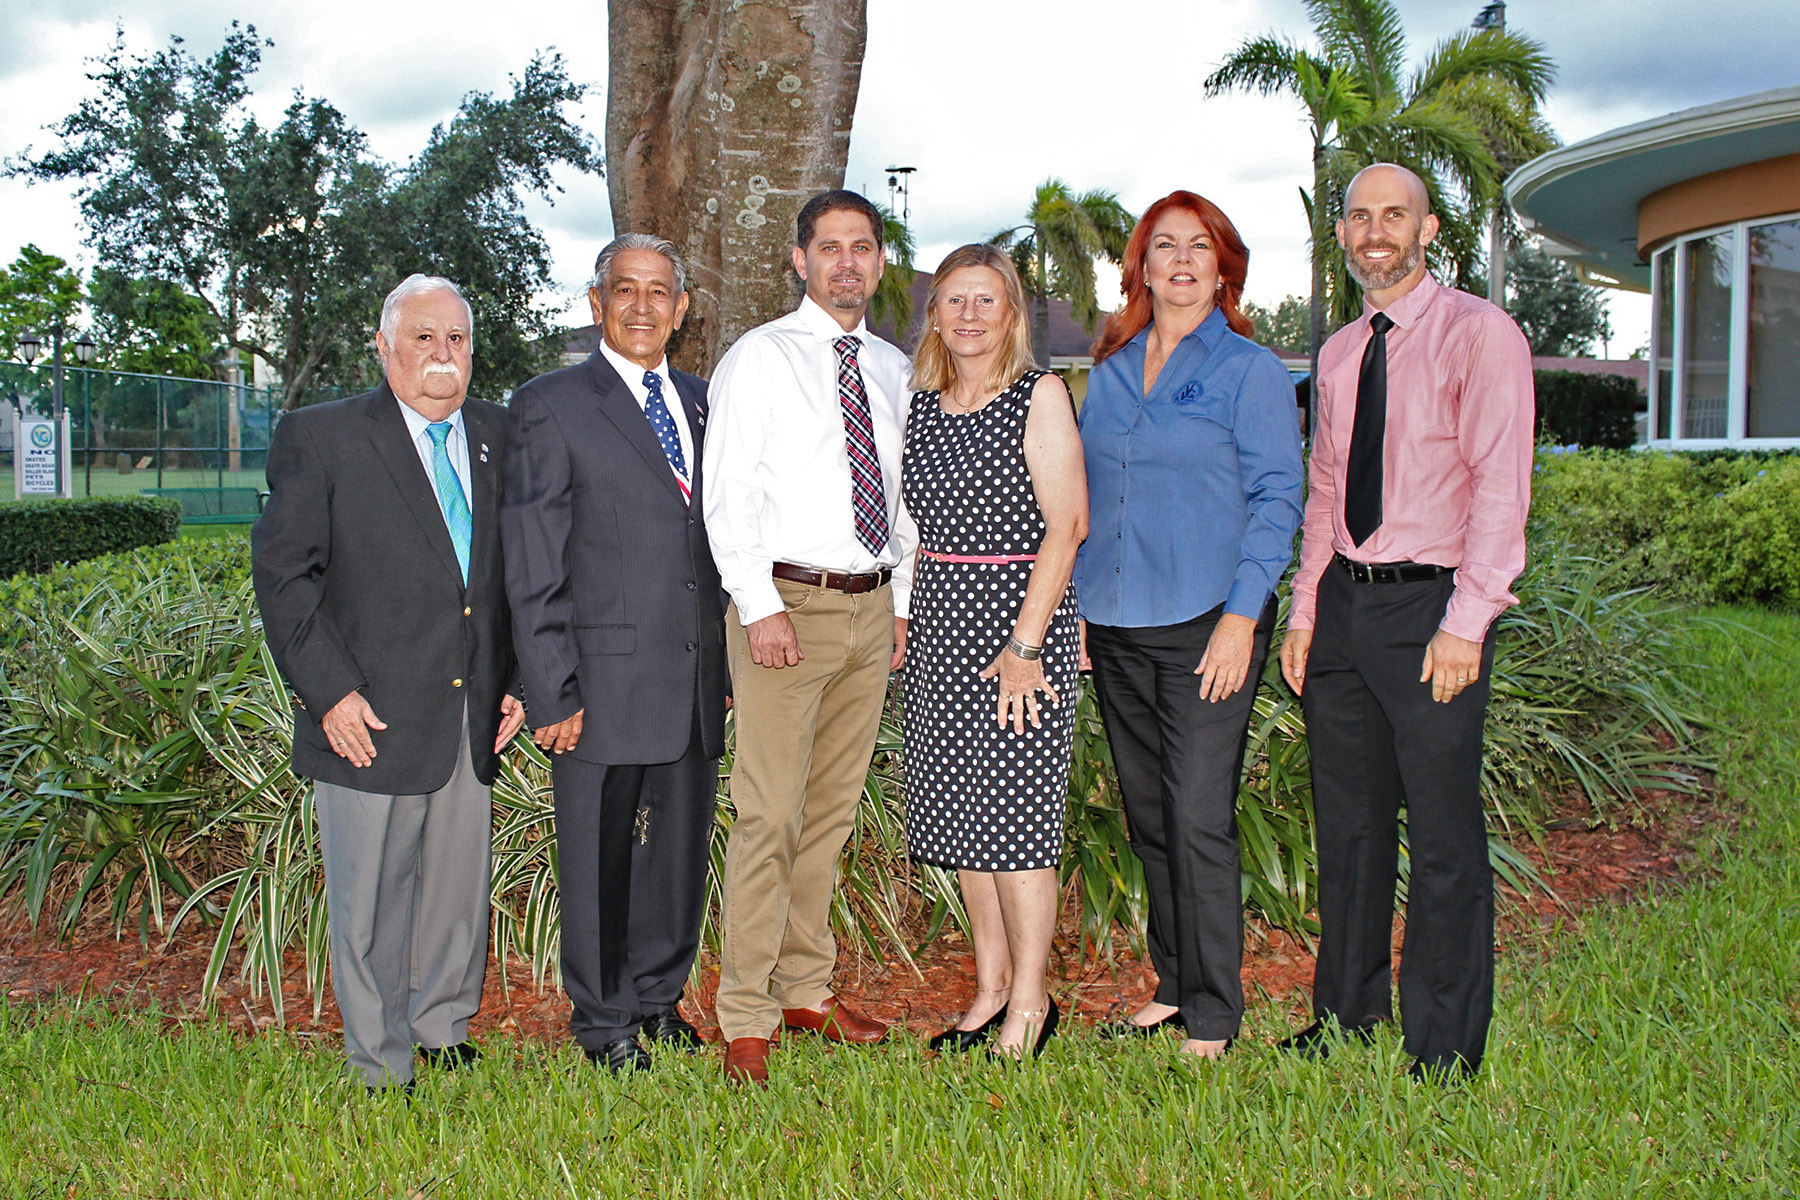 Mayor with council members